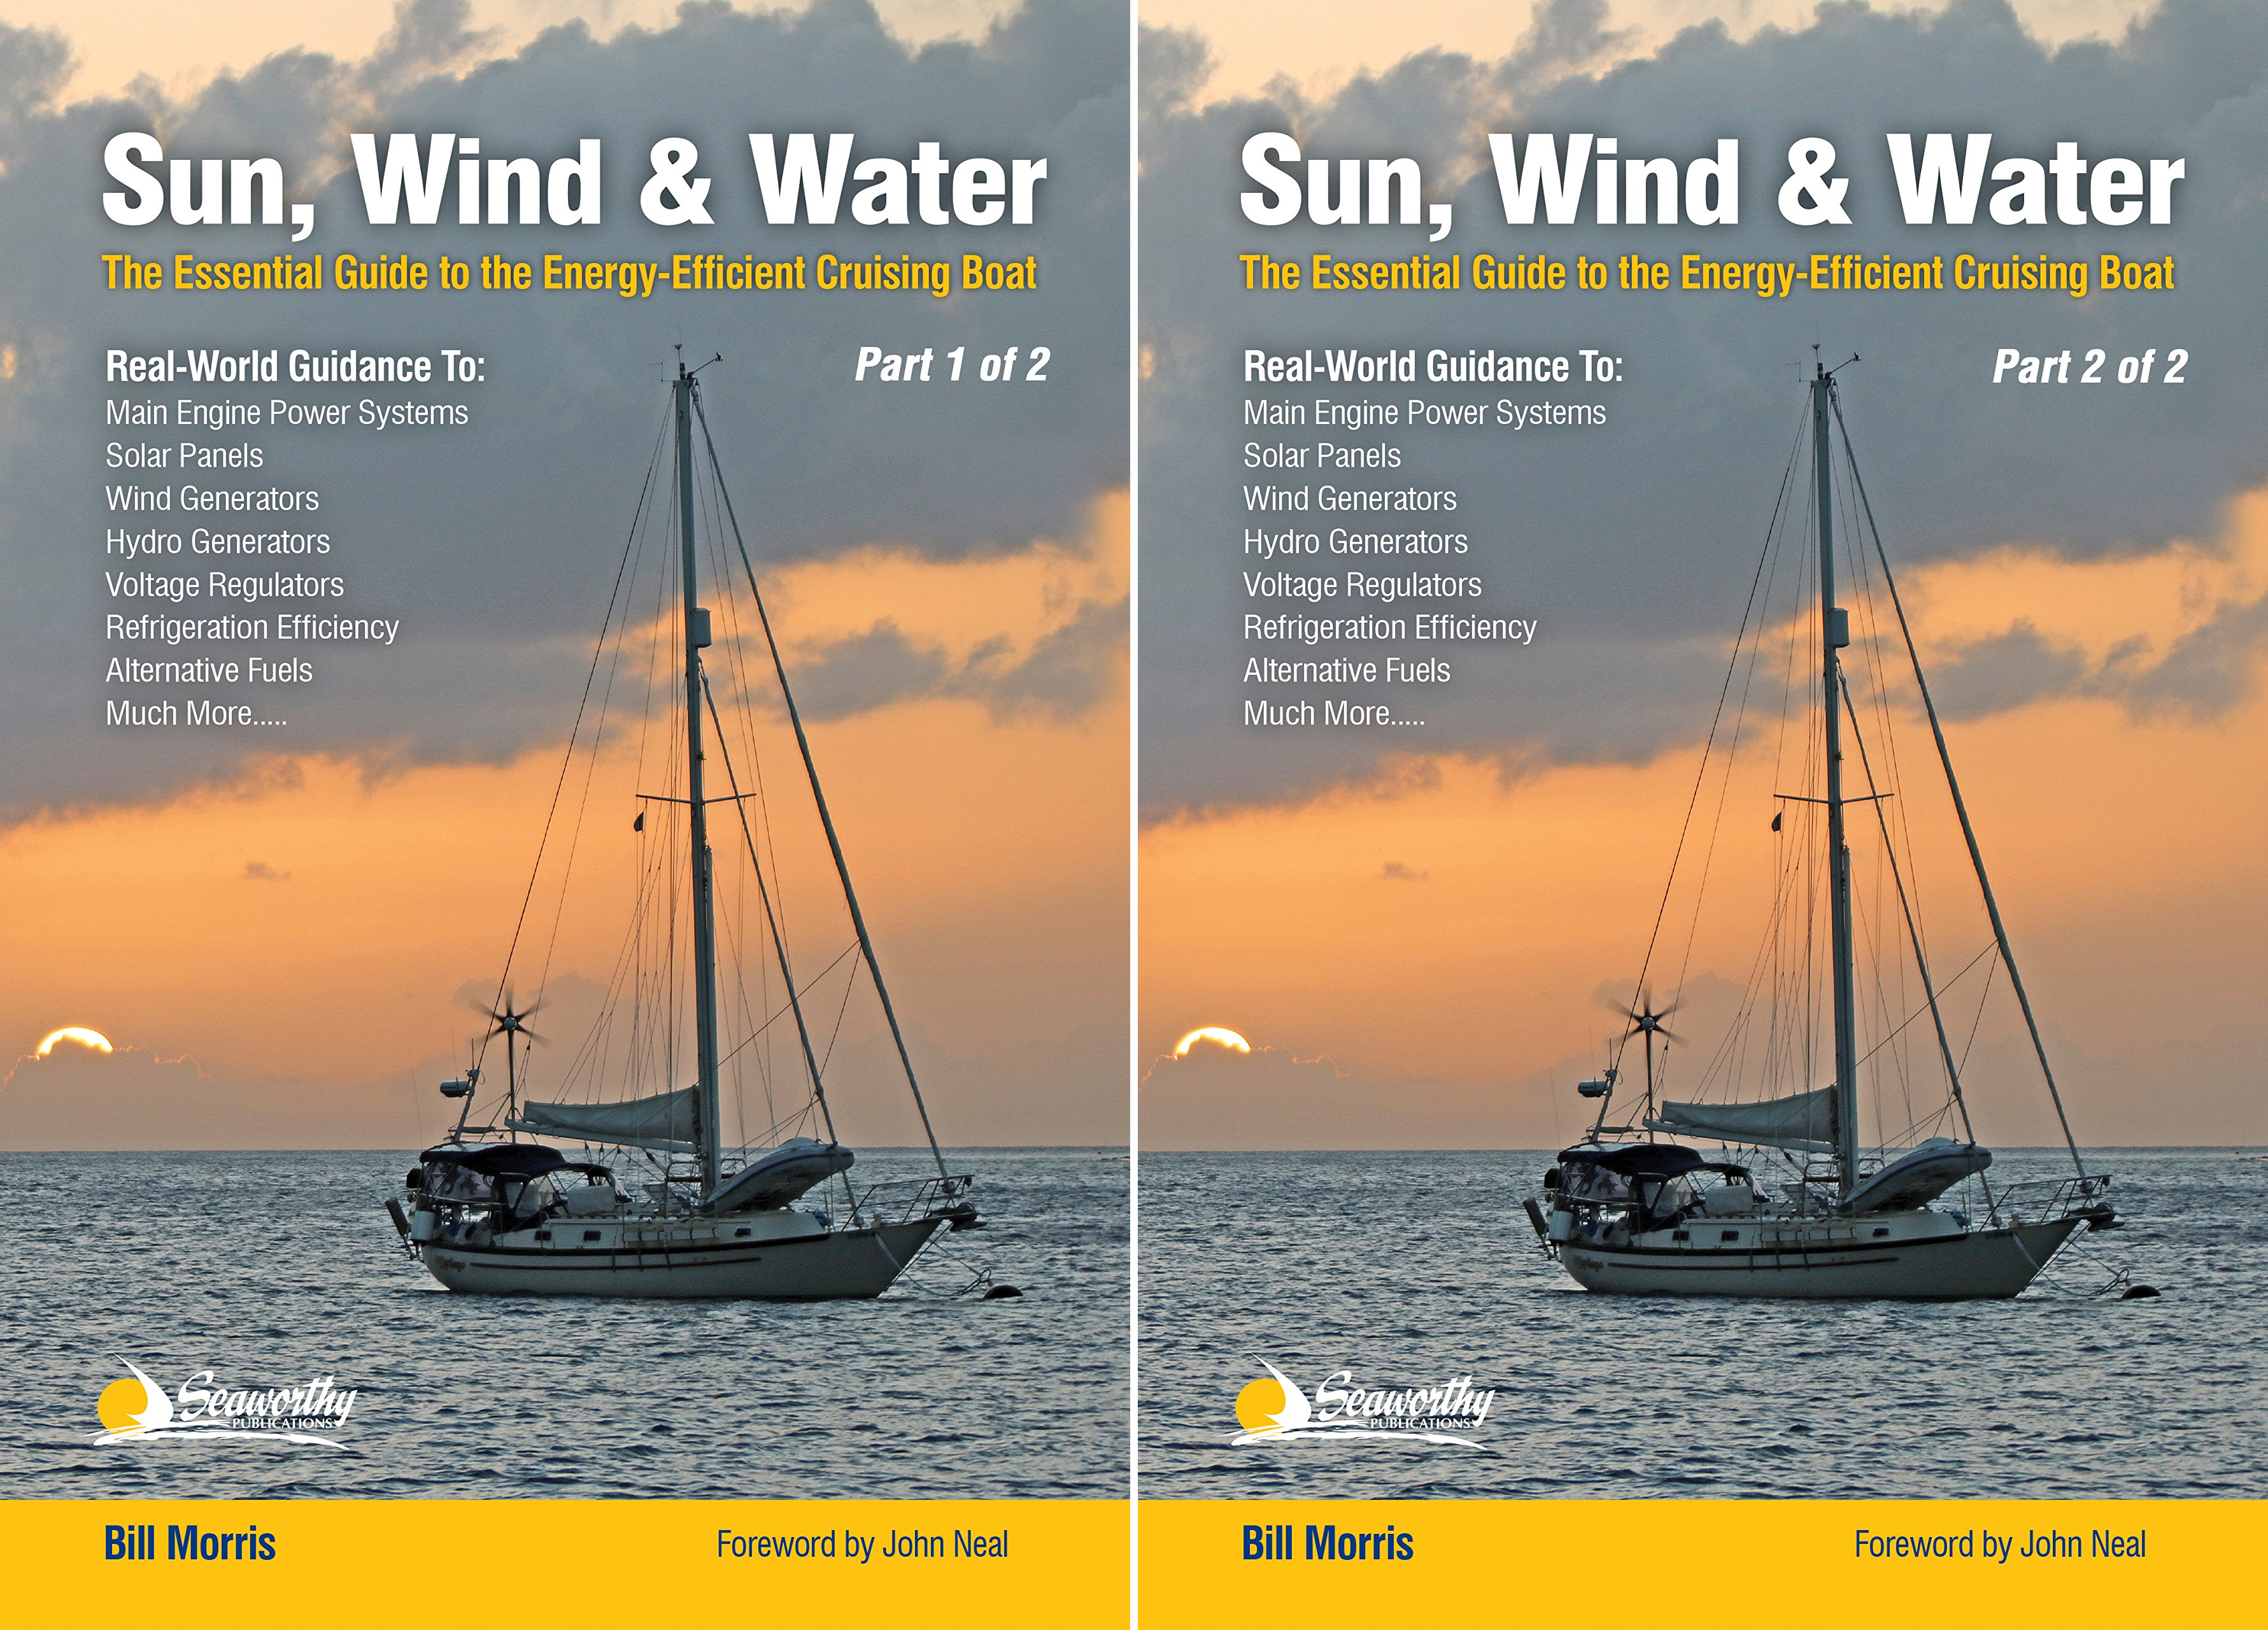 Sun, Wind, & Water: The Essential Guide to the Energy-Efficient Cruising Boat (2 Book Series)